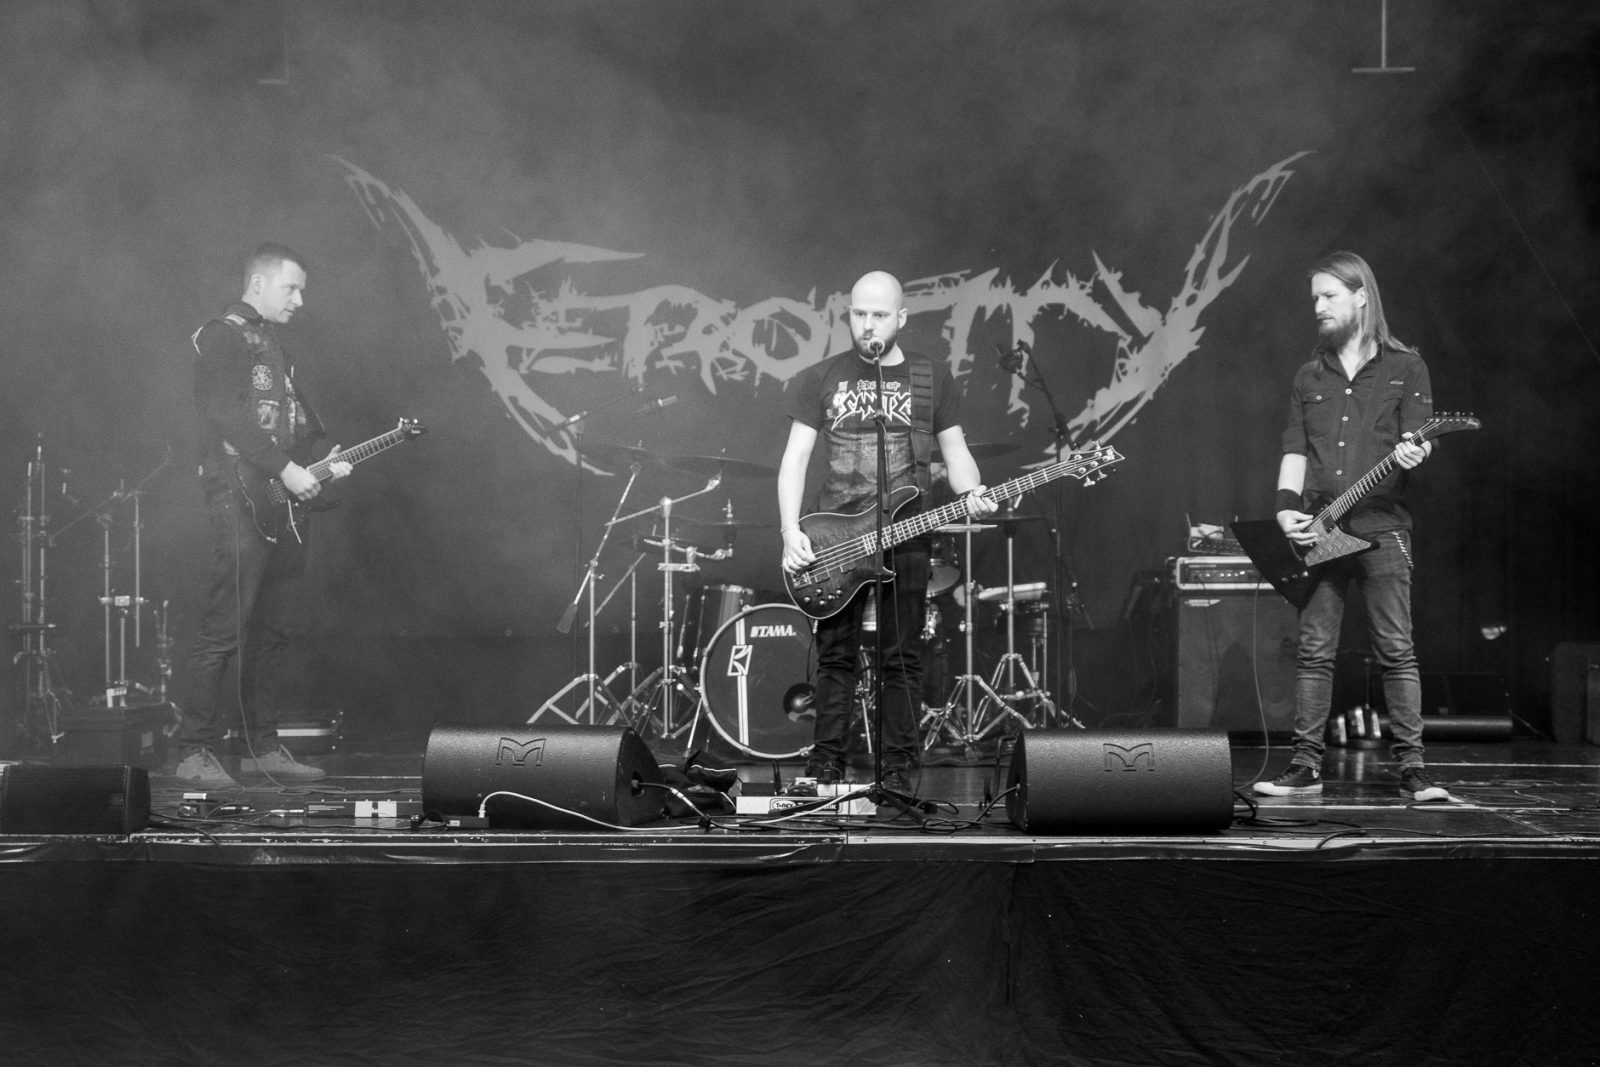 Concert Photography: Electric Hellride making a sound check at Hammer Smashed Face in Frederikshavn, 2019